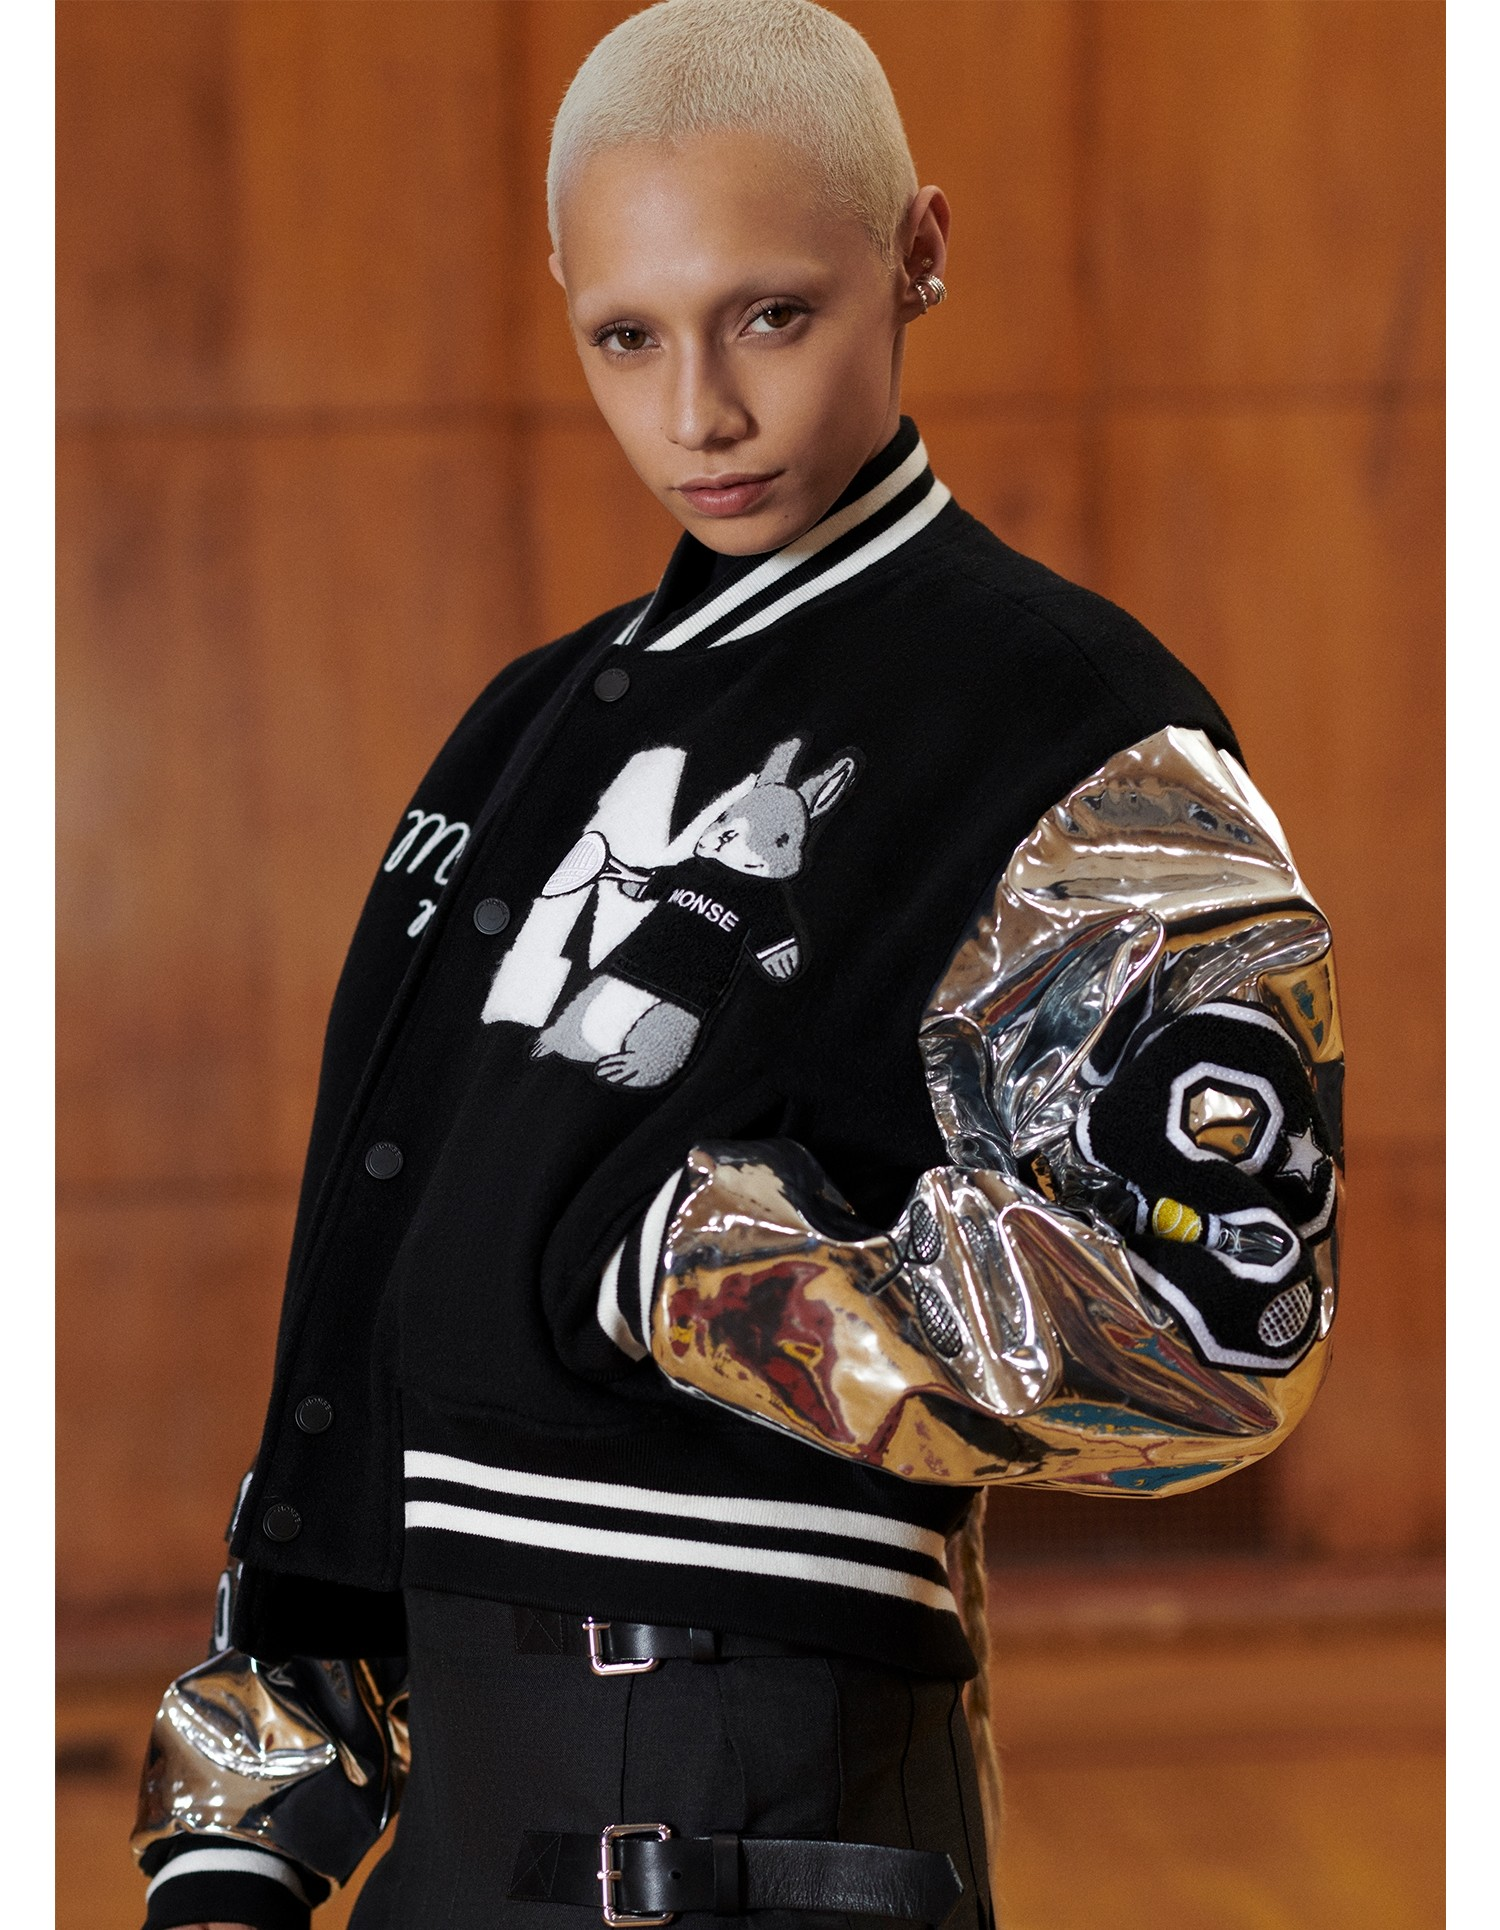 MONSE Cropped Letterman Jacket in Black and Silver on Model Front View